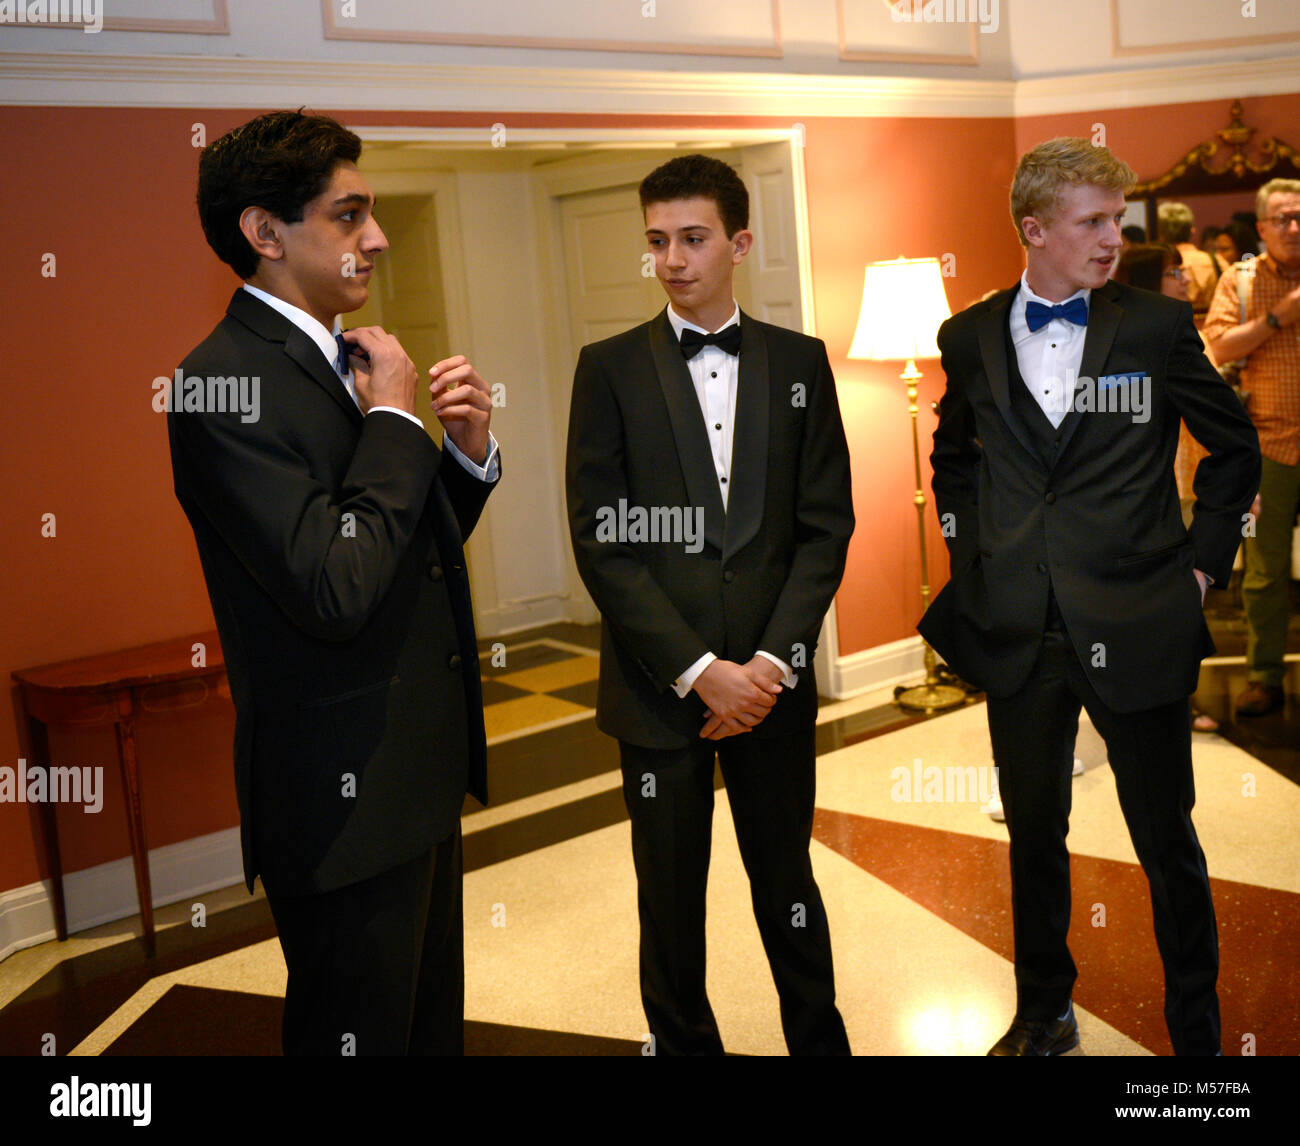 17 ans nerveux high school juniors attendent leur prom dates. Photo Stock